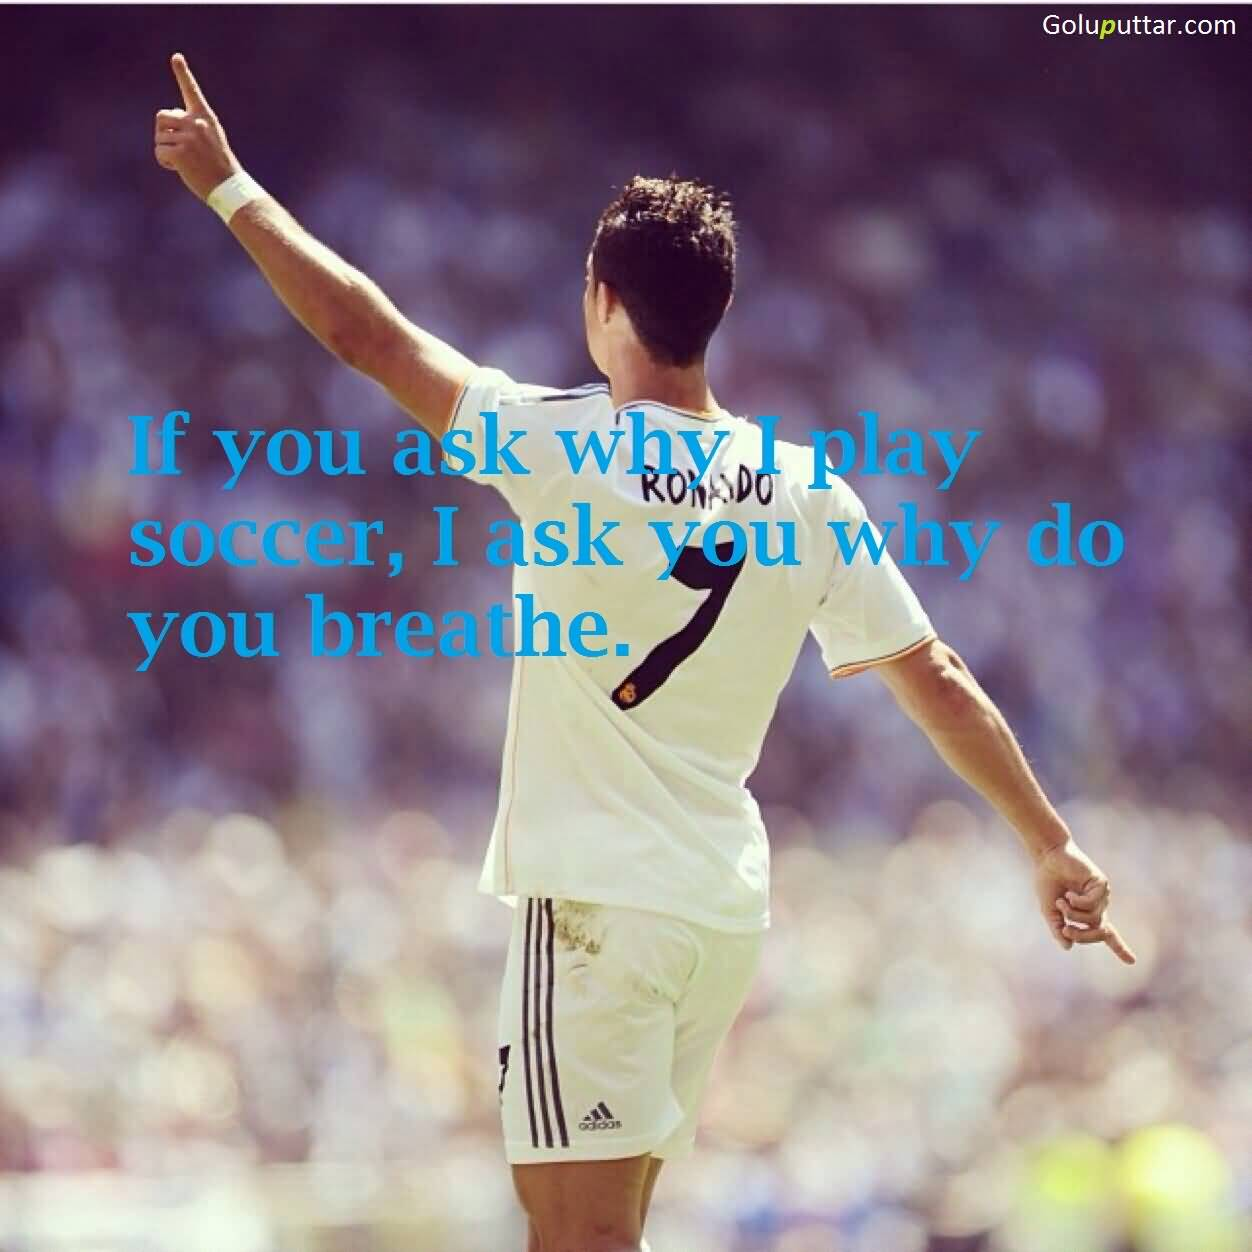 Soccer Quote Fabulous Soccer Quote It My Life  Goluputtar